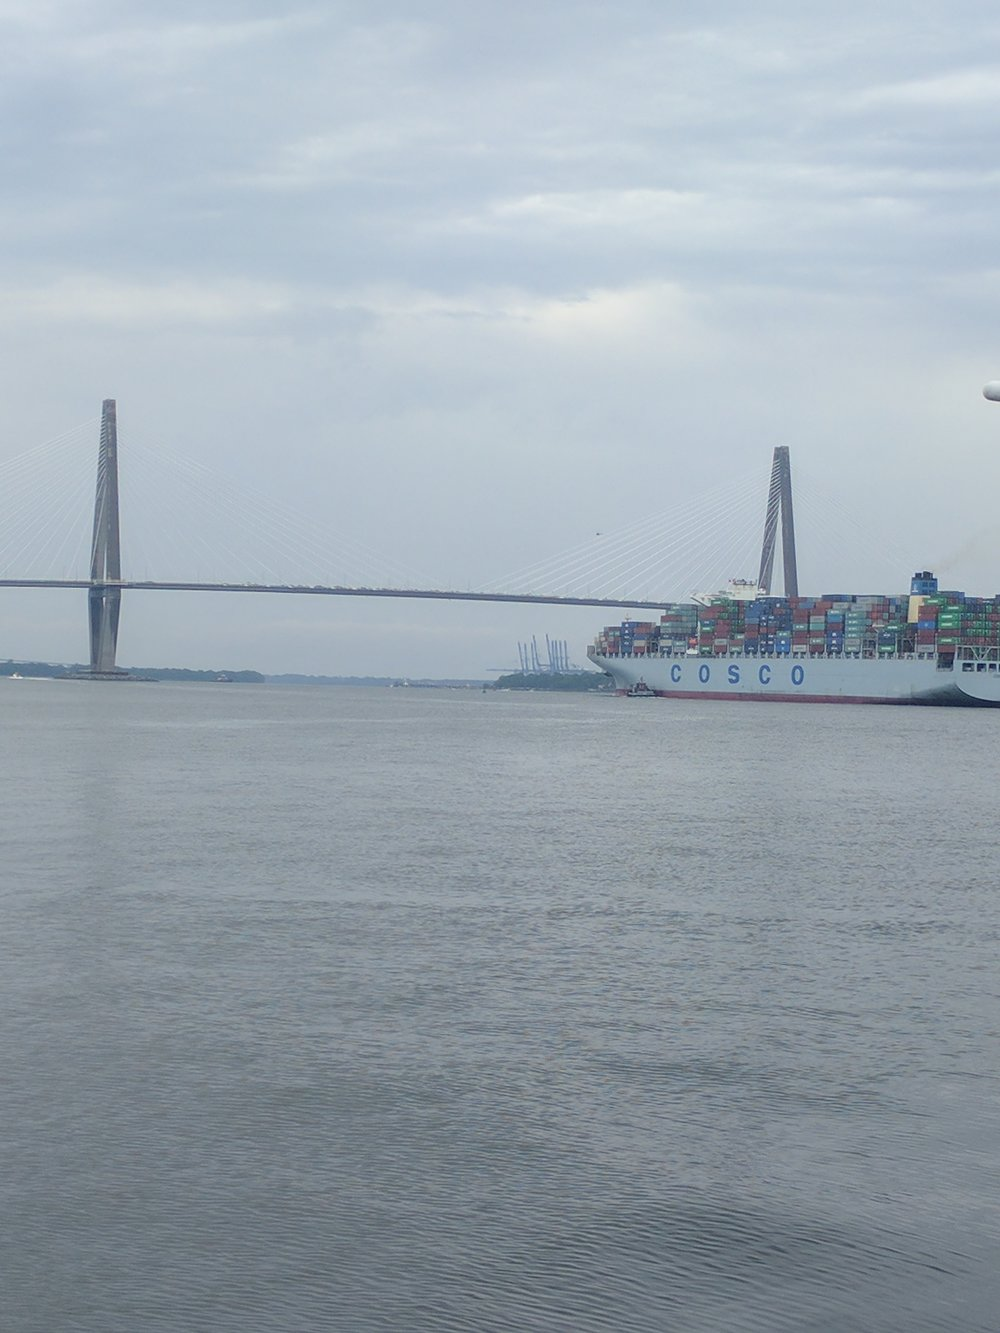 DevelopmentApproachingRavenelBridge7.jpg